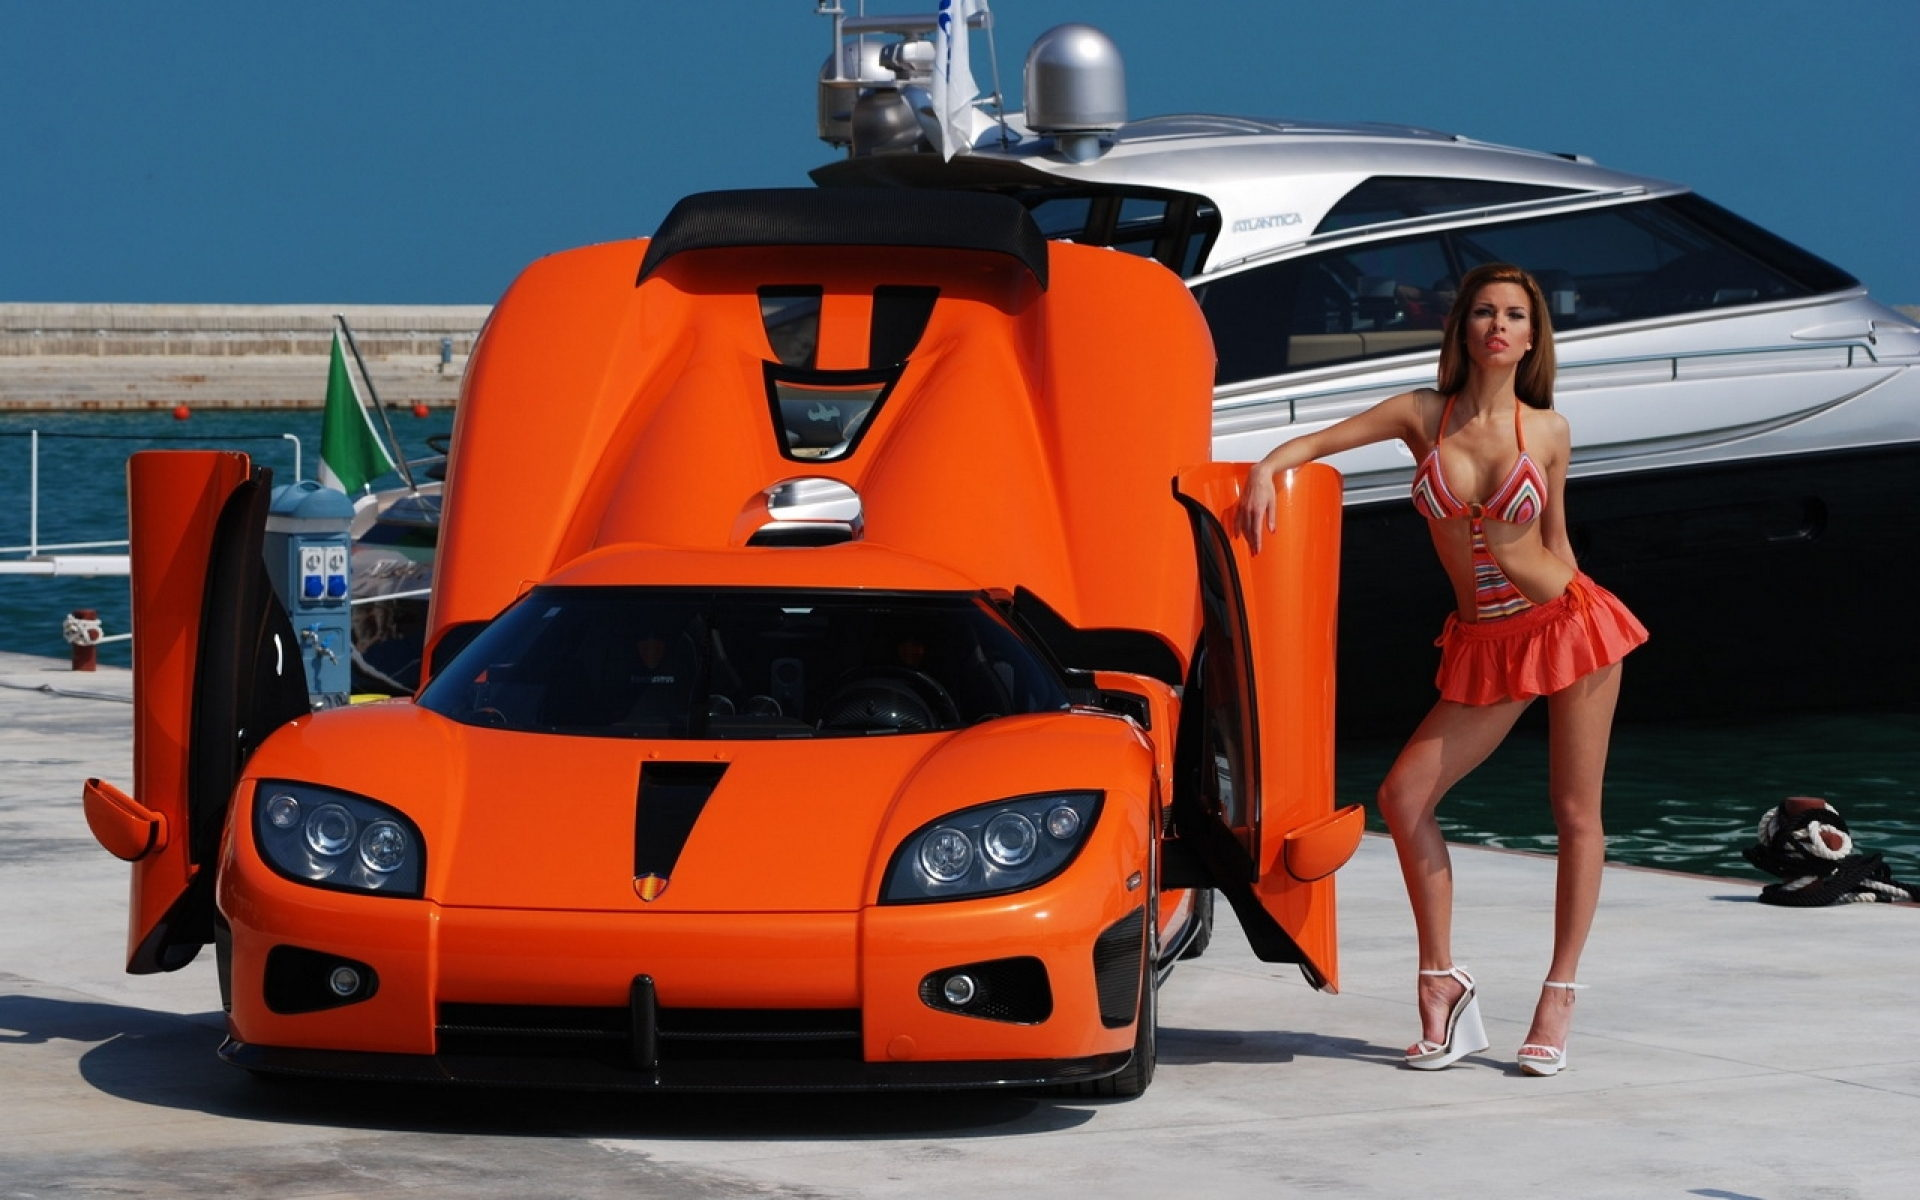 sports-car-hot-girl-wallpapers